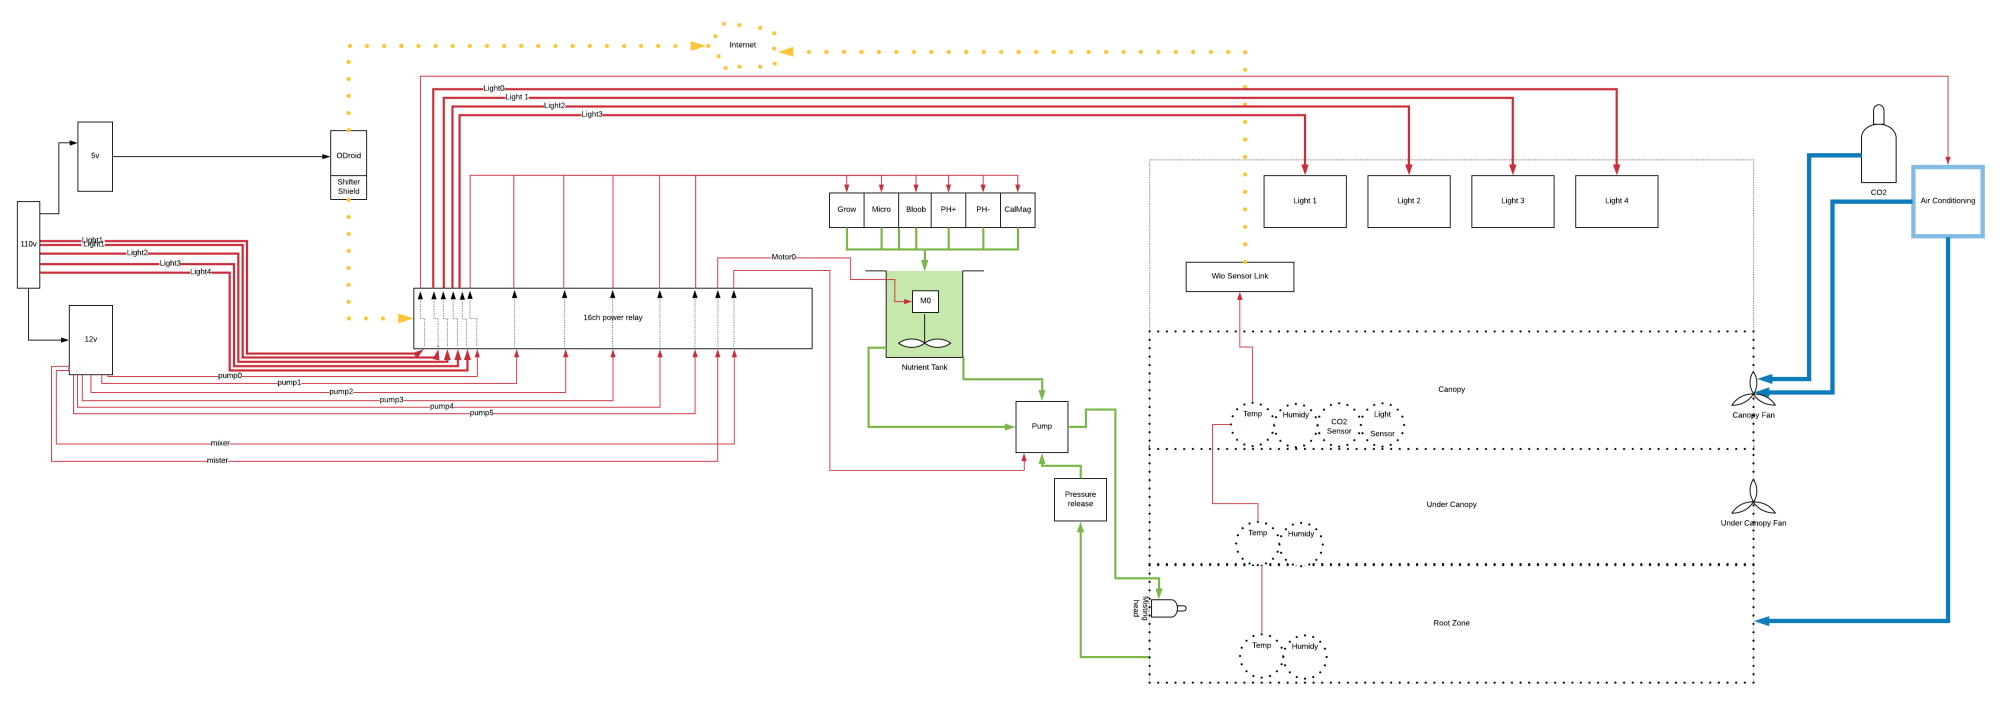 hight resolution of proposed grow room automation setup feedback